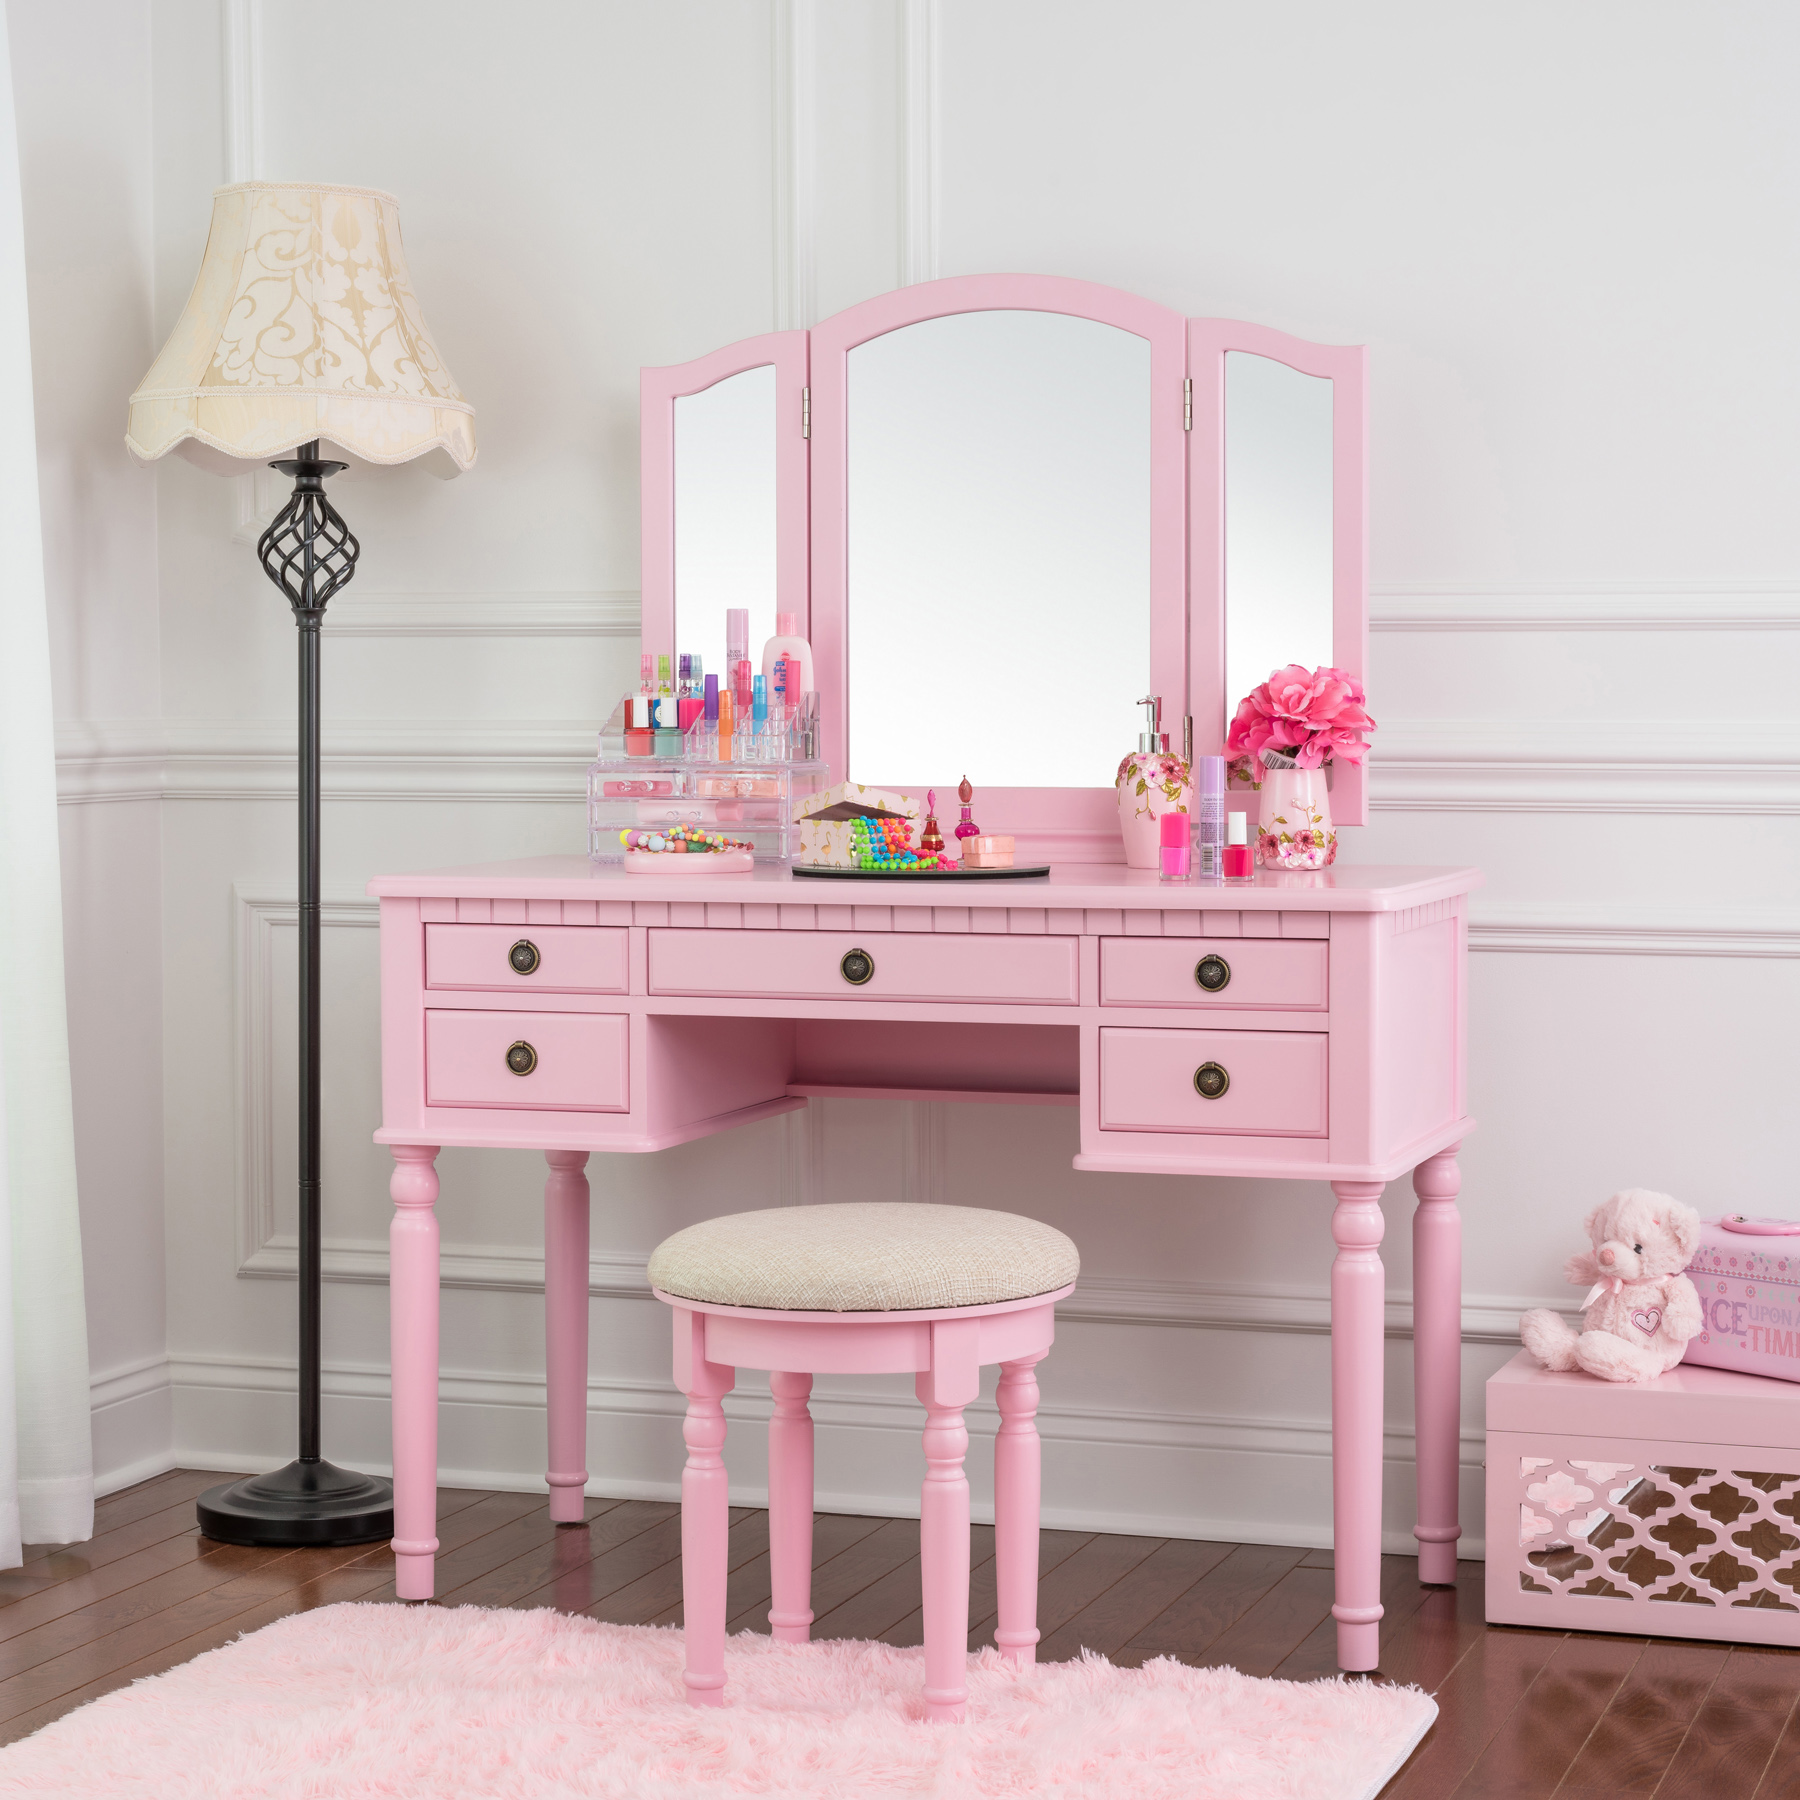 Delicieux Fineboard Dressing Set With Stool, Beauty Station Makeup Table, Three  Mirror Vanity Set, 5 Organization Drawers, Pink   Walmart.com